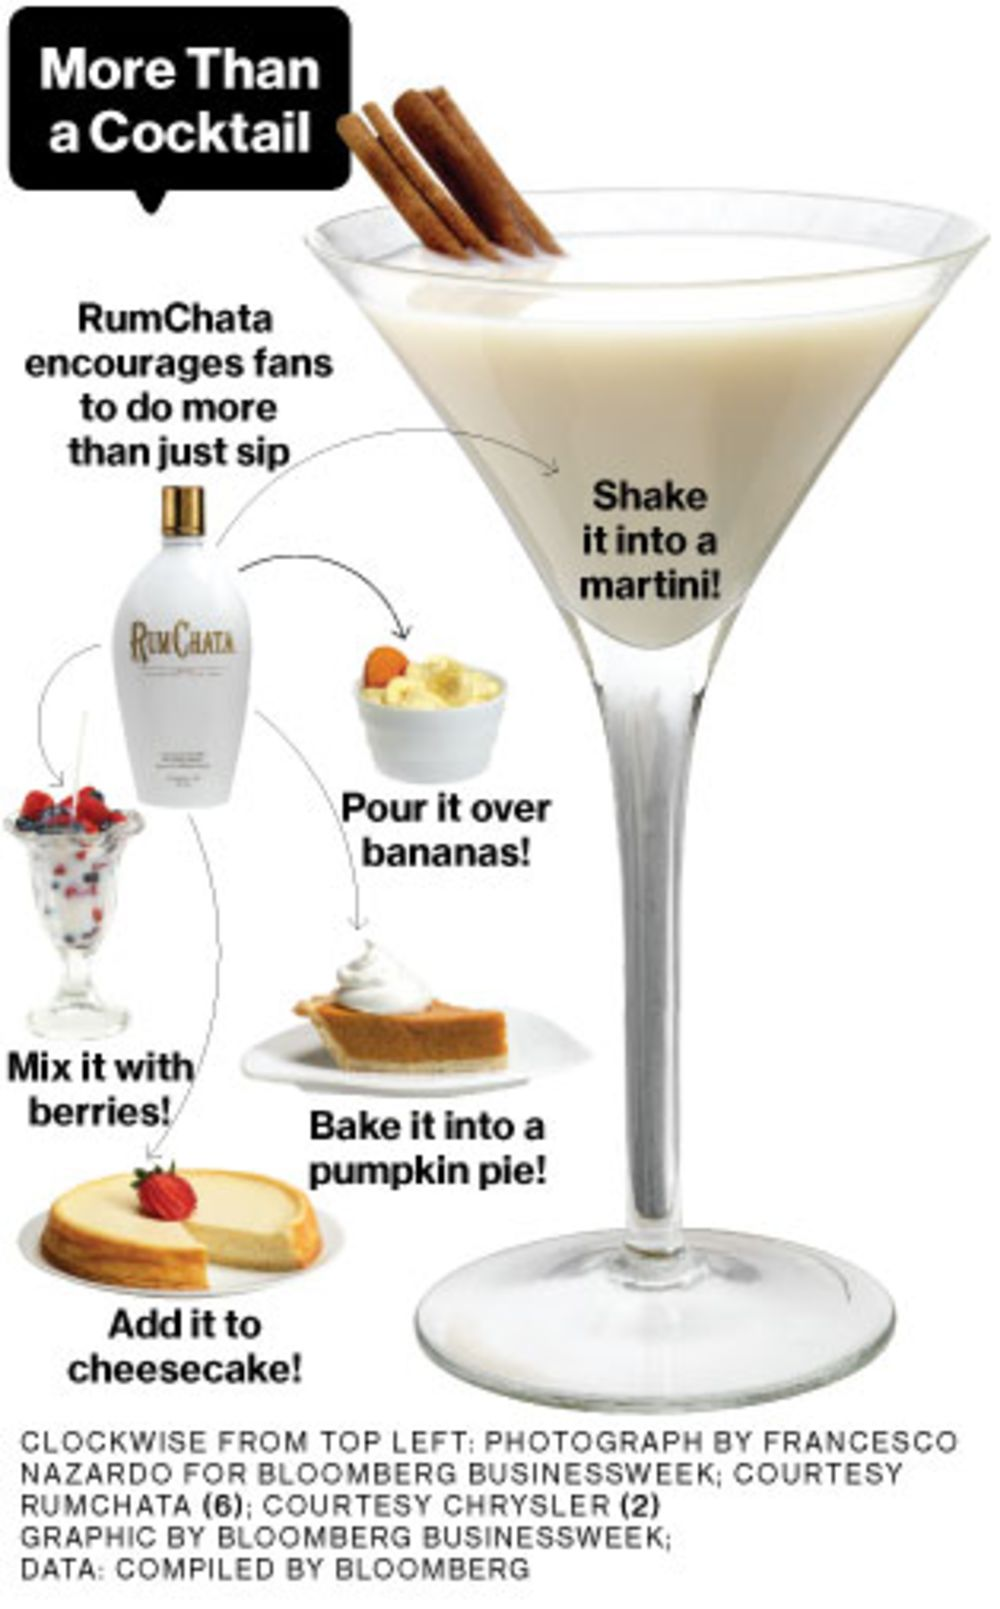 RumChata's Success Is 'Game Changer' Among Cream Liqueurs - Bloomberg